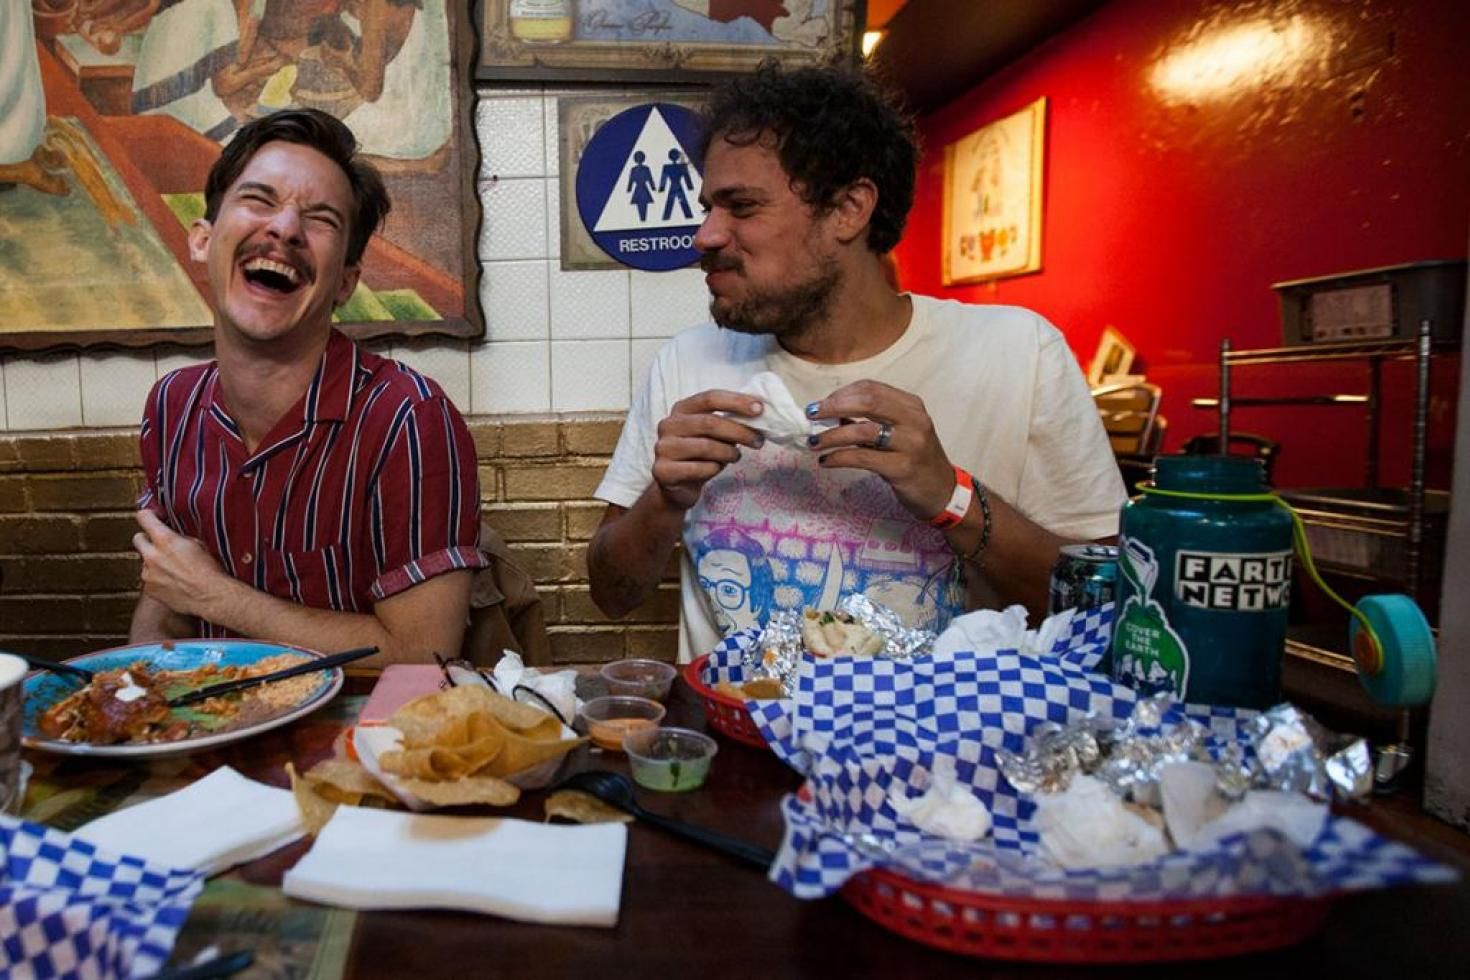 Antarctigo Vespucci: 10 albums you should love as much as they do